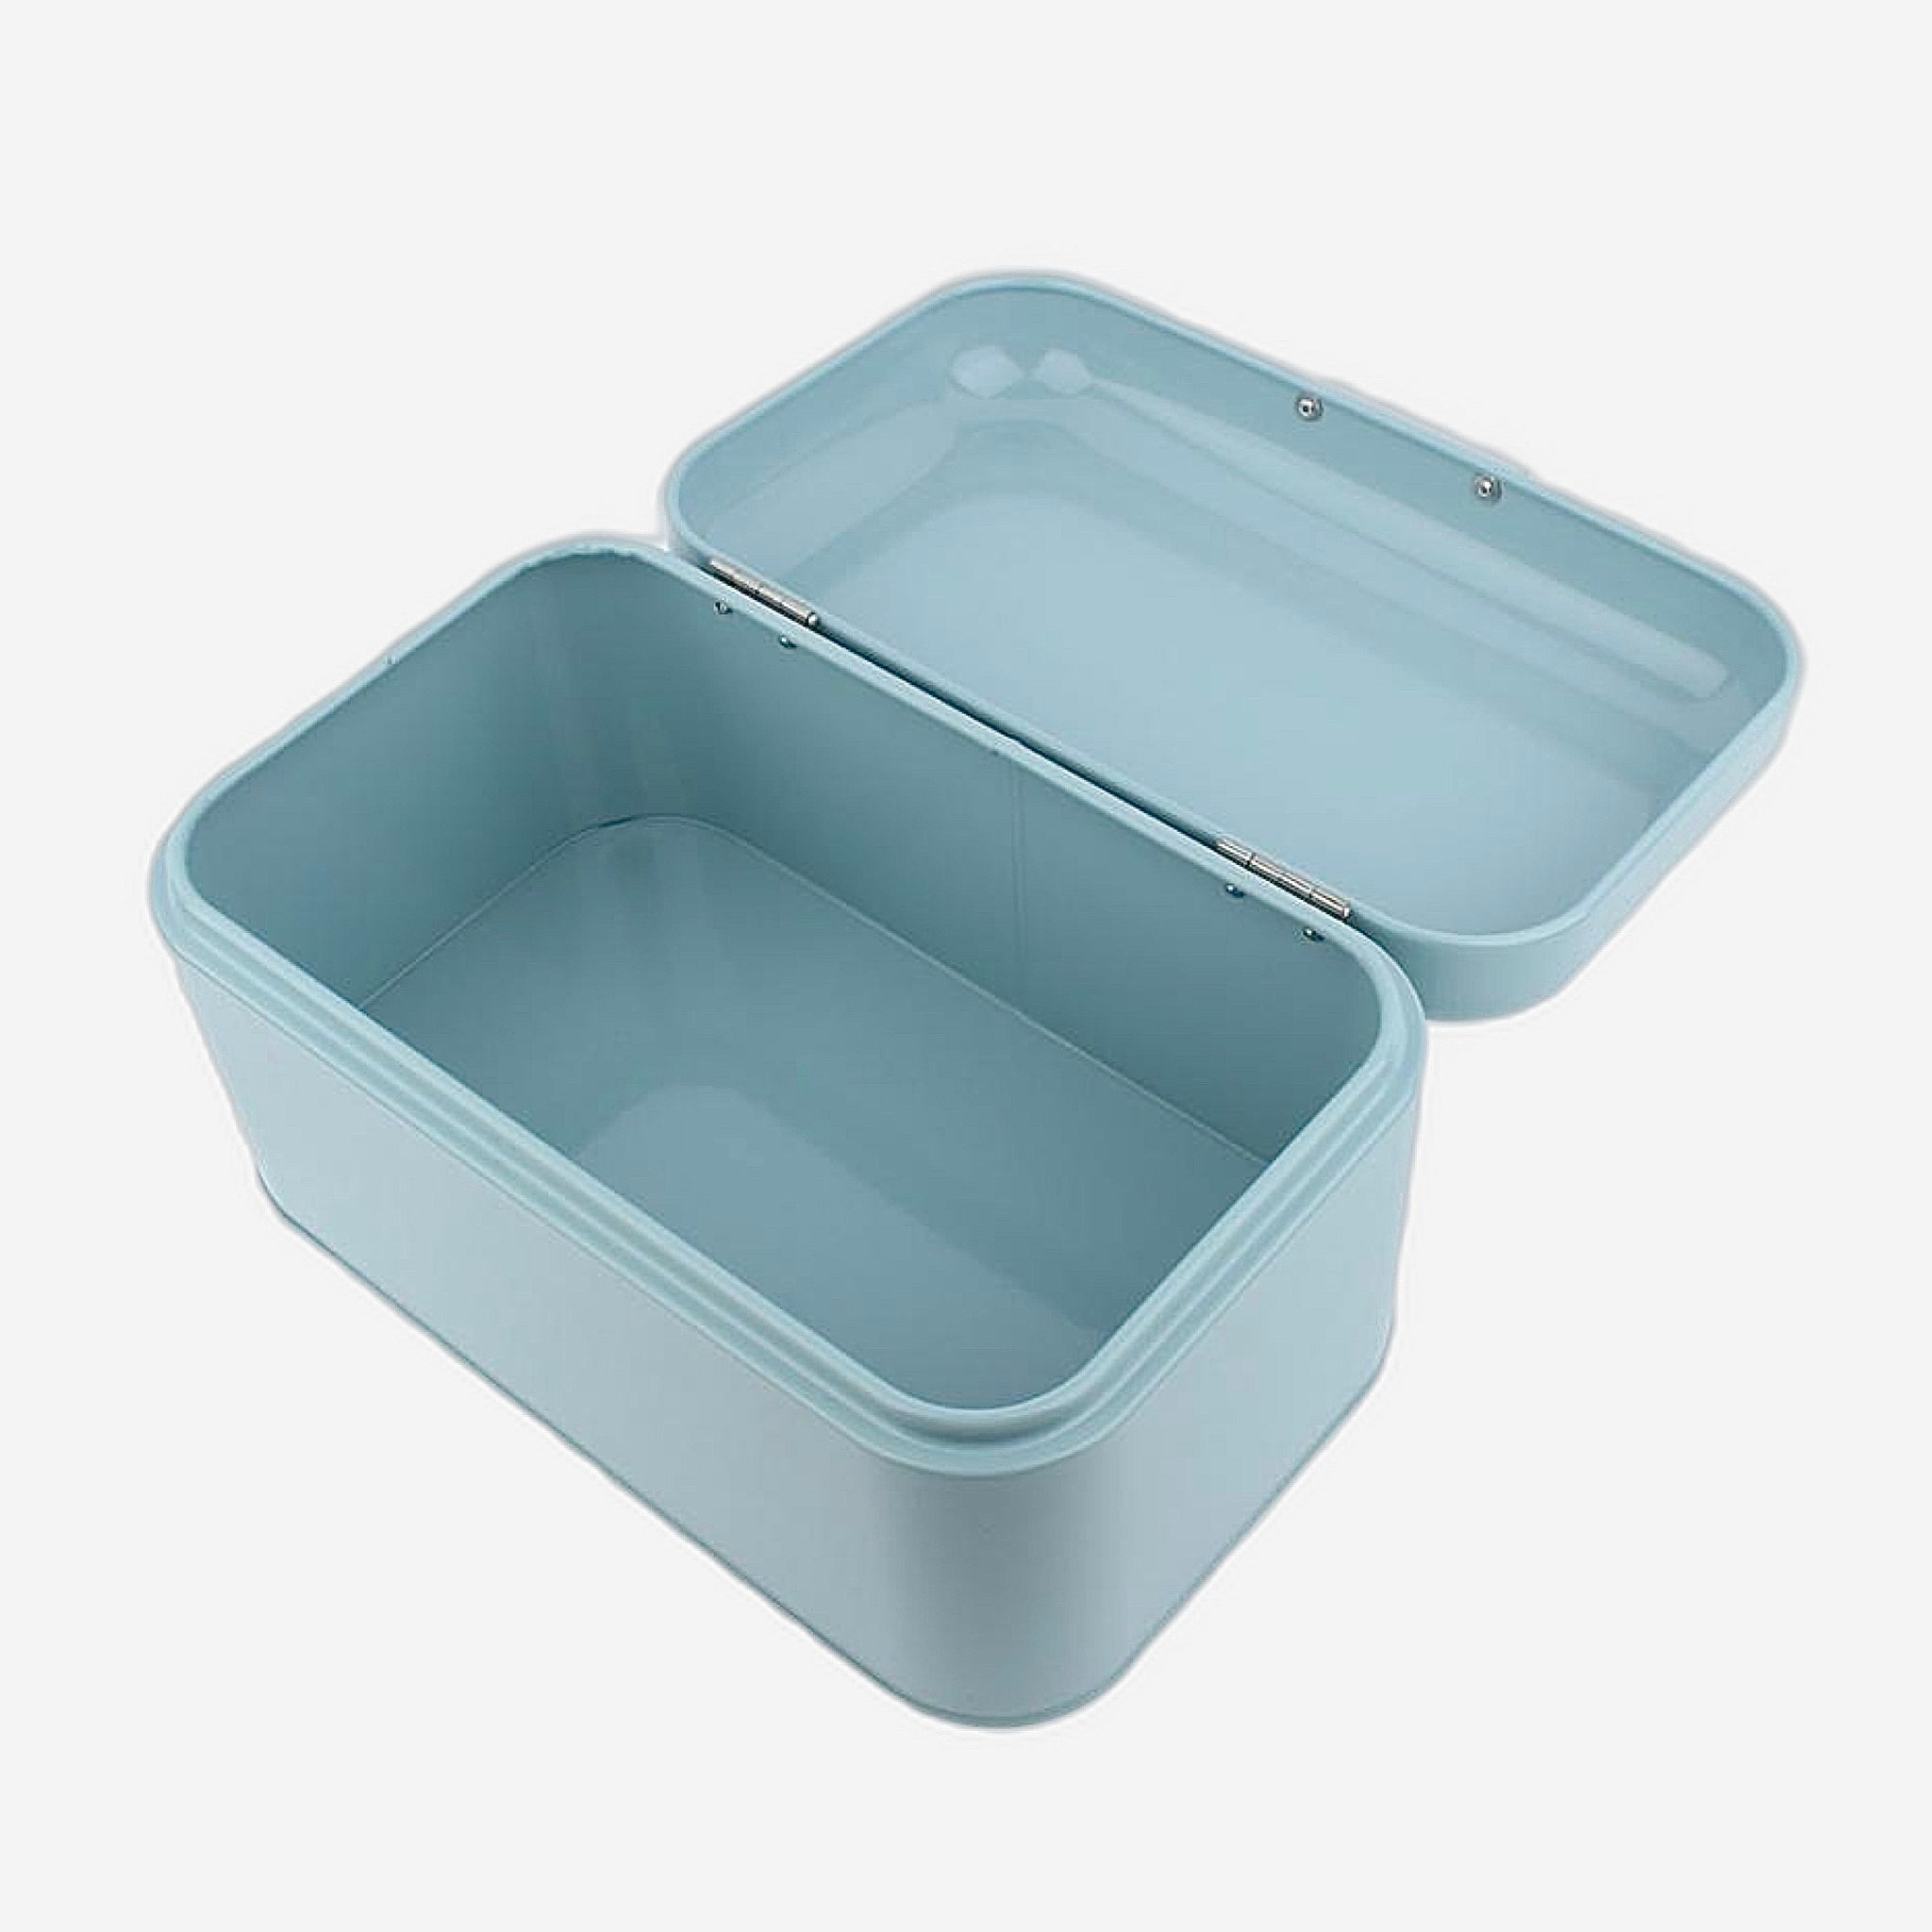 Retro Light Blue Metal Bread Box Bread Storage Organizer Boxes Solid Color Large Capacity Bin Kitchen Storage Container Details